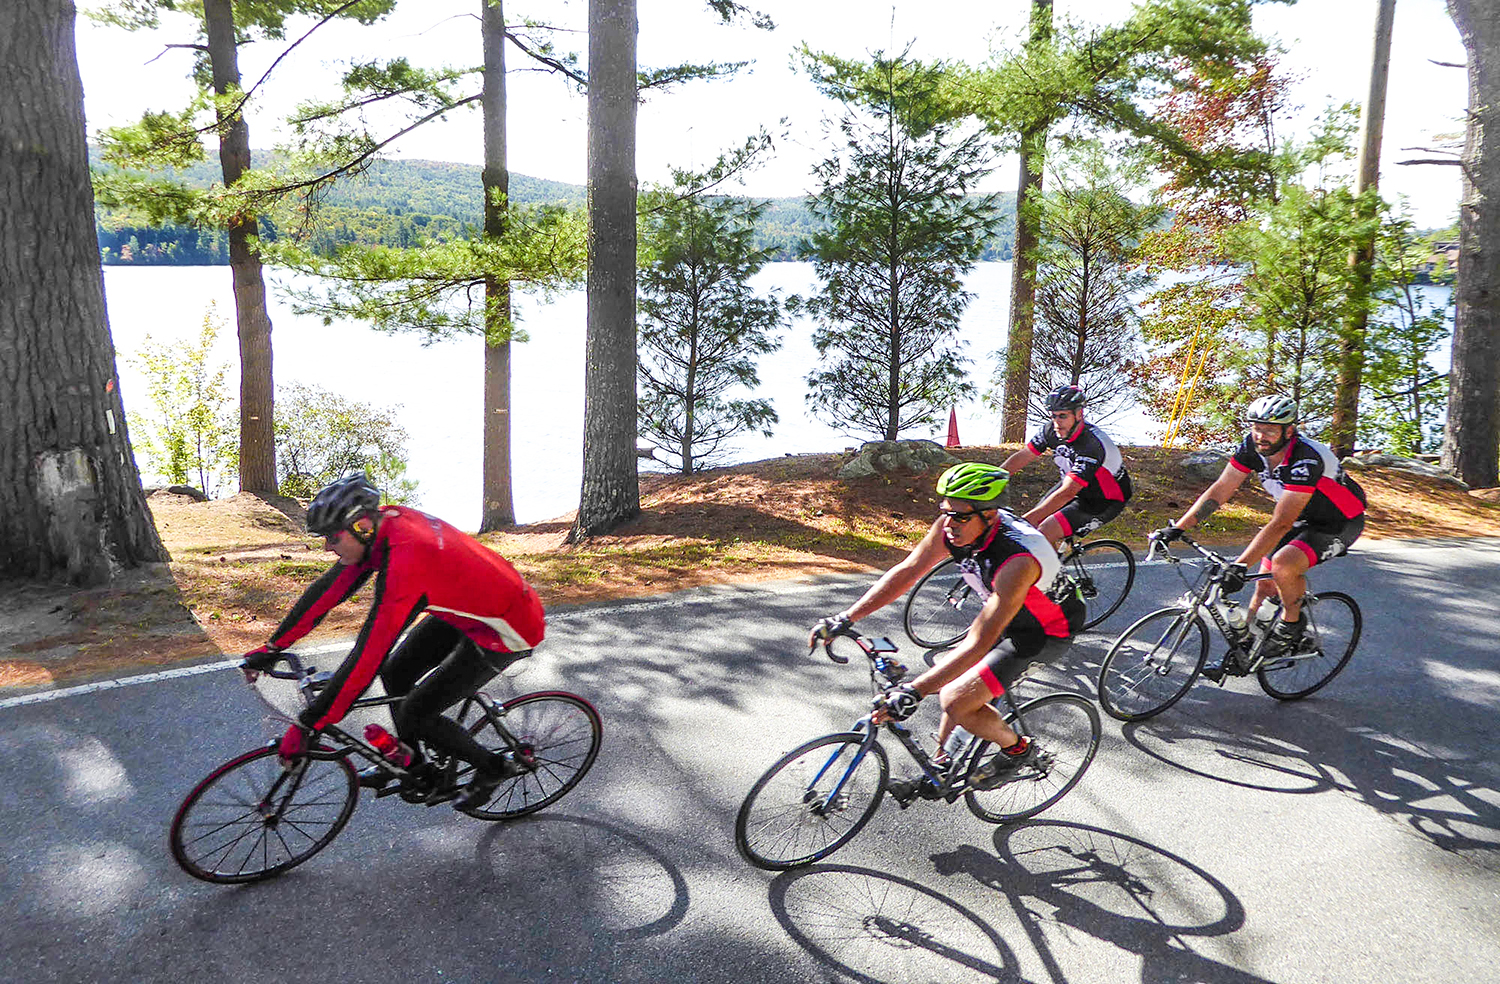 The Harry Elkes Ride starts in Brant Lake and winds through the beautiful North Warren County area.   Dave Kraus/krausgrafik.com